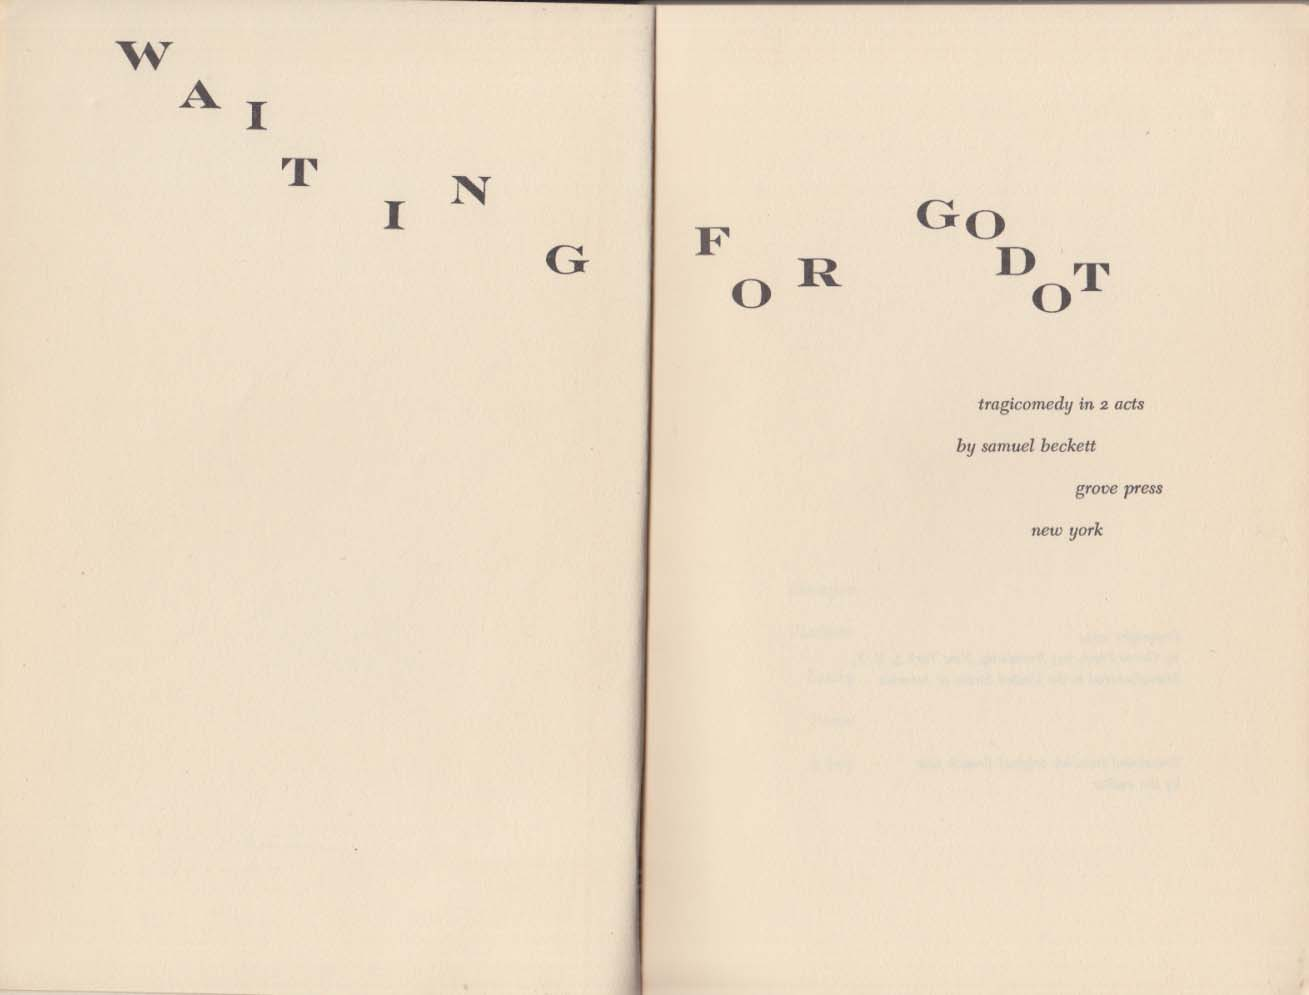 Image for Samuel Beckett: Waiting for Godot: Evergreen 1st Edition 1954 1st issue